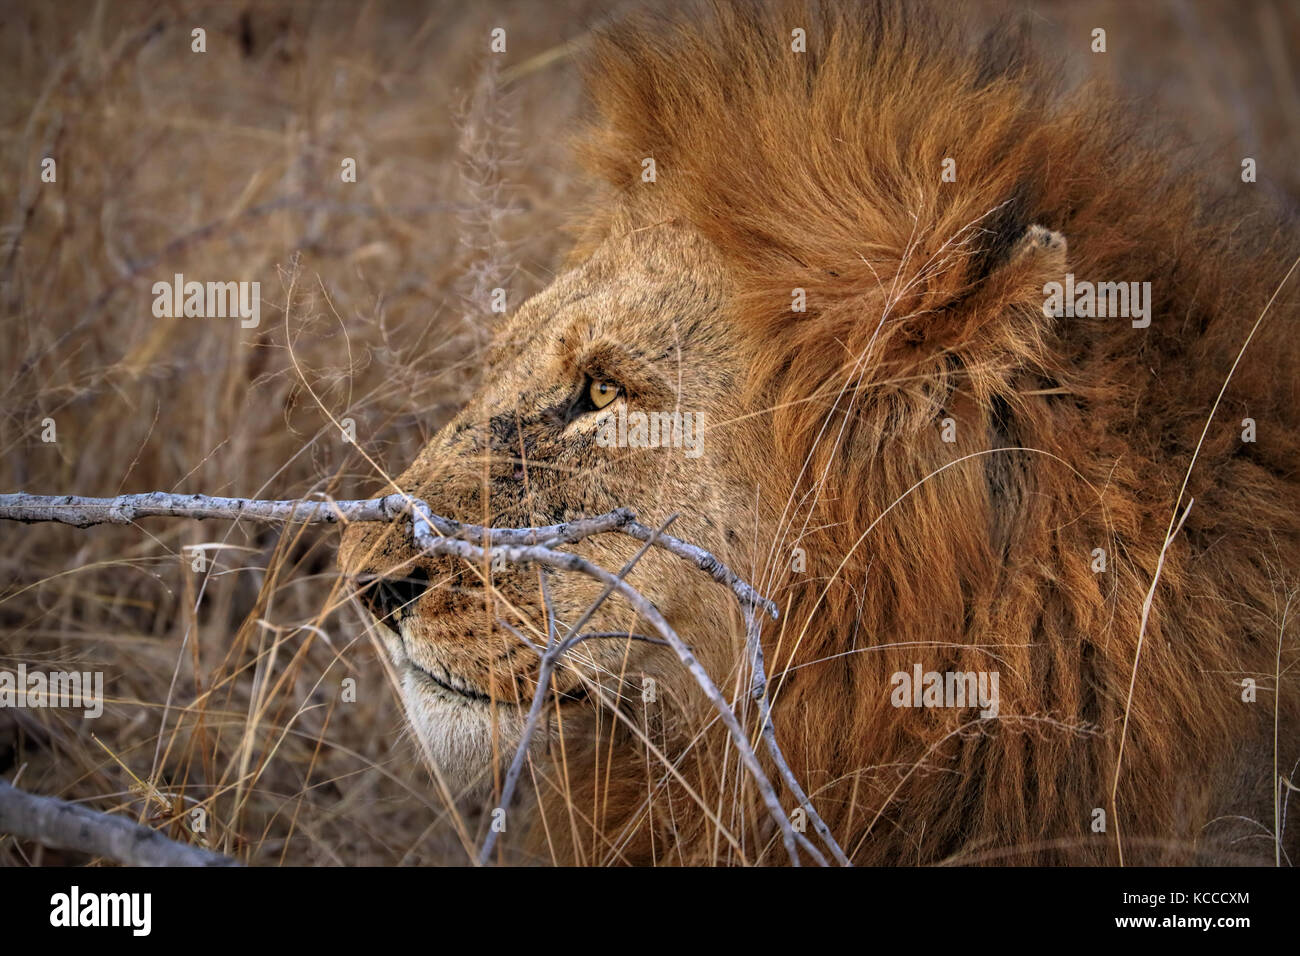 Close up of male lion in the Kruger National Park, South Africa Stock Photo